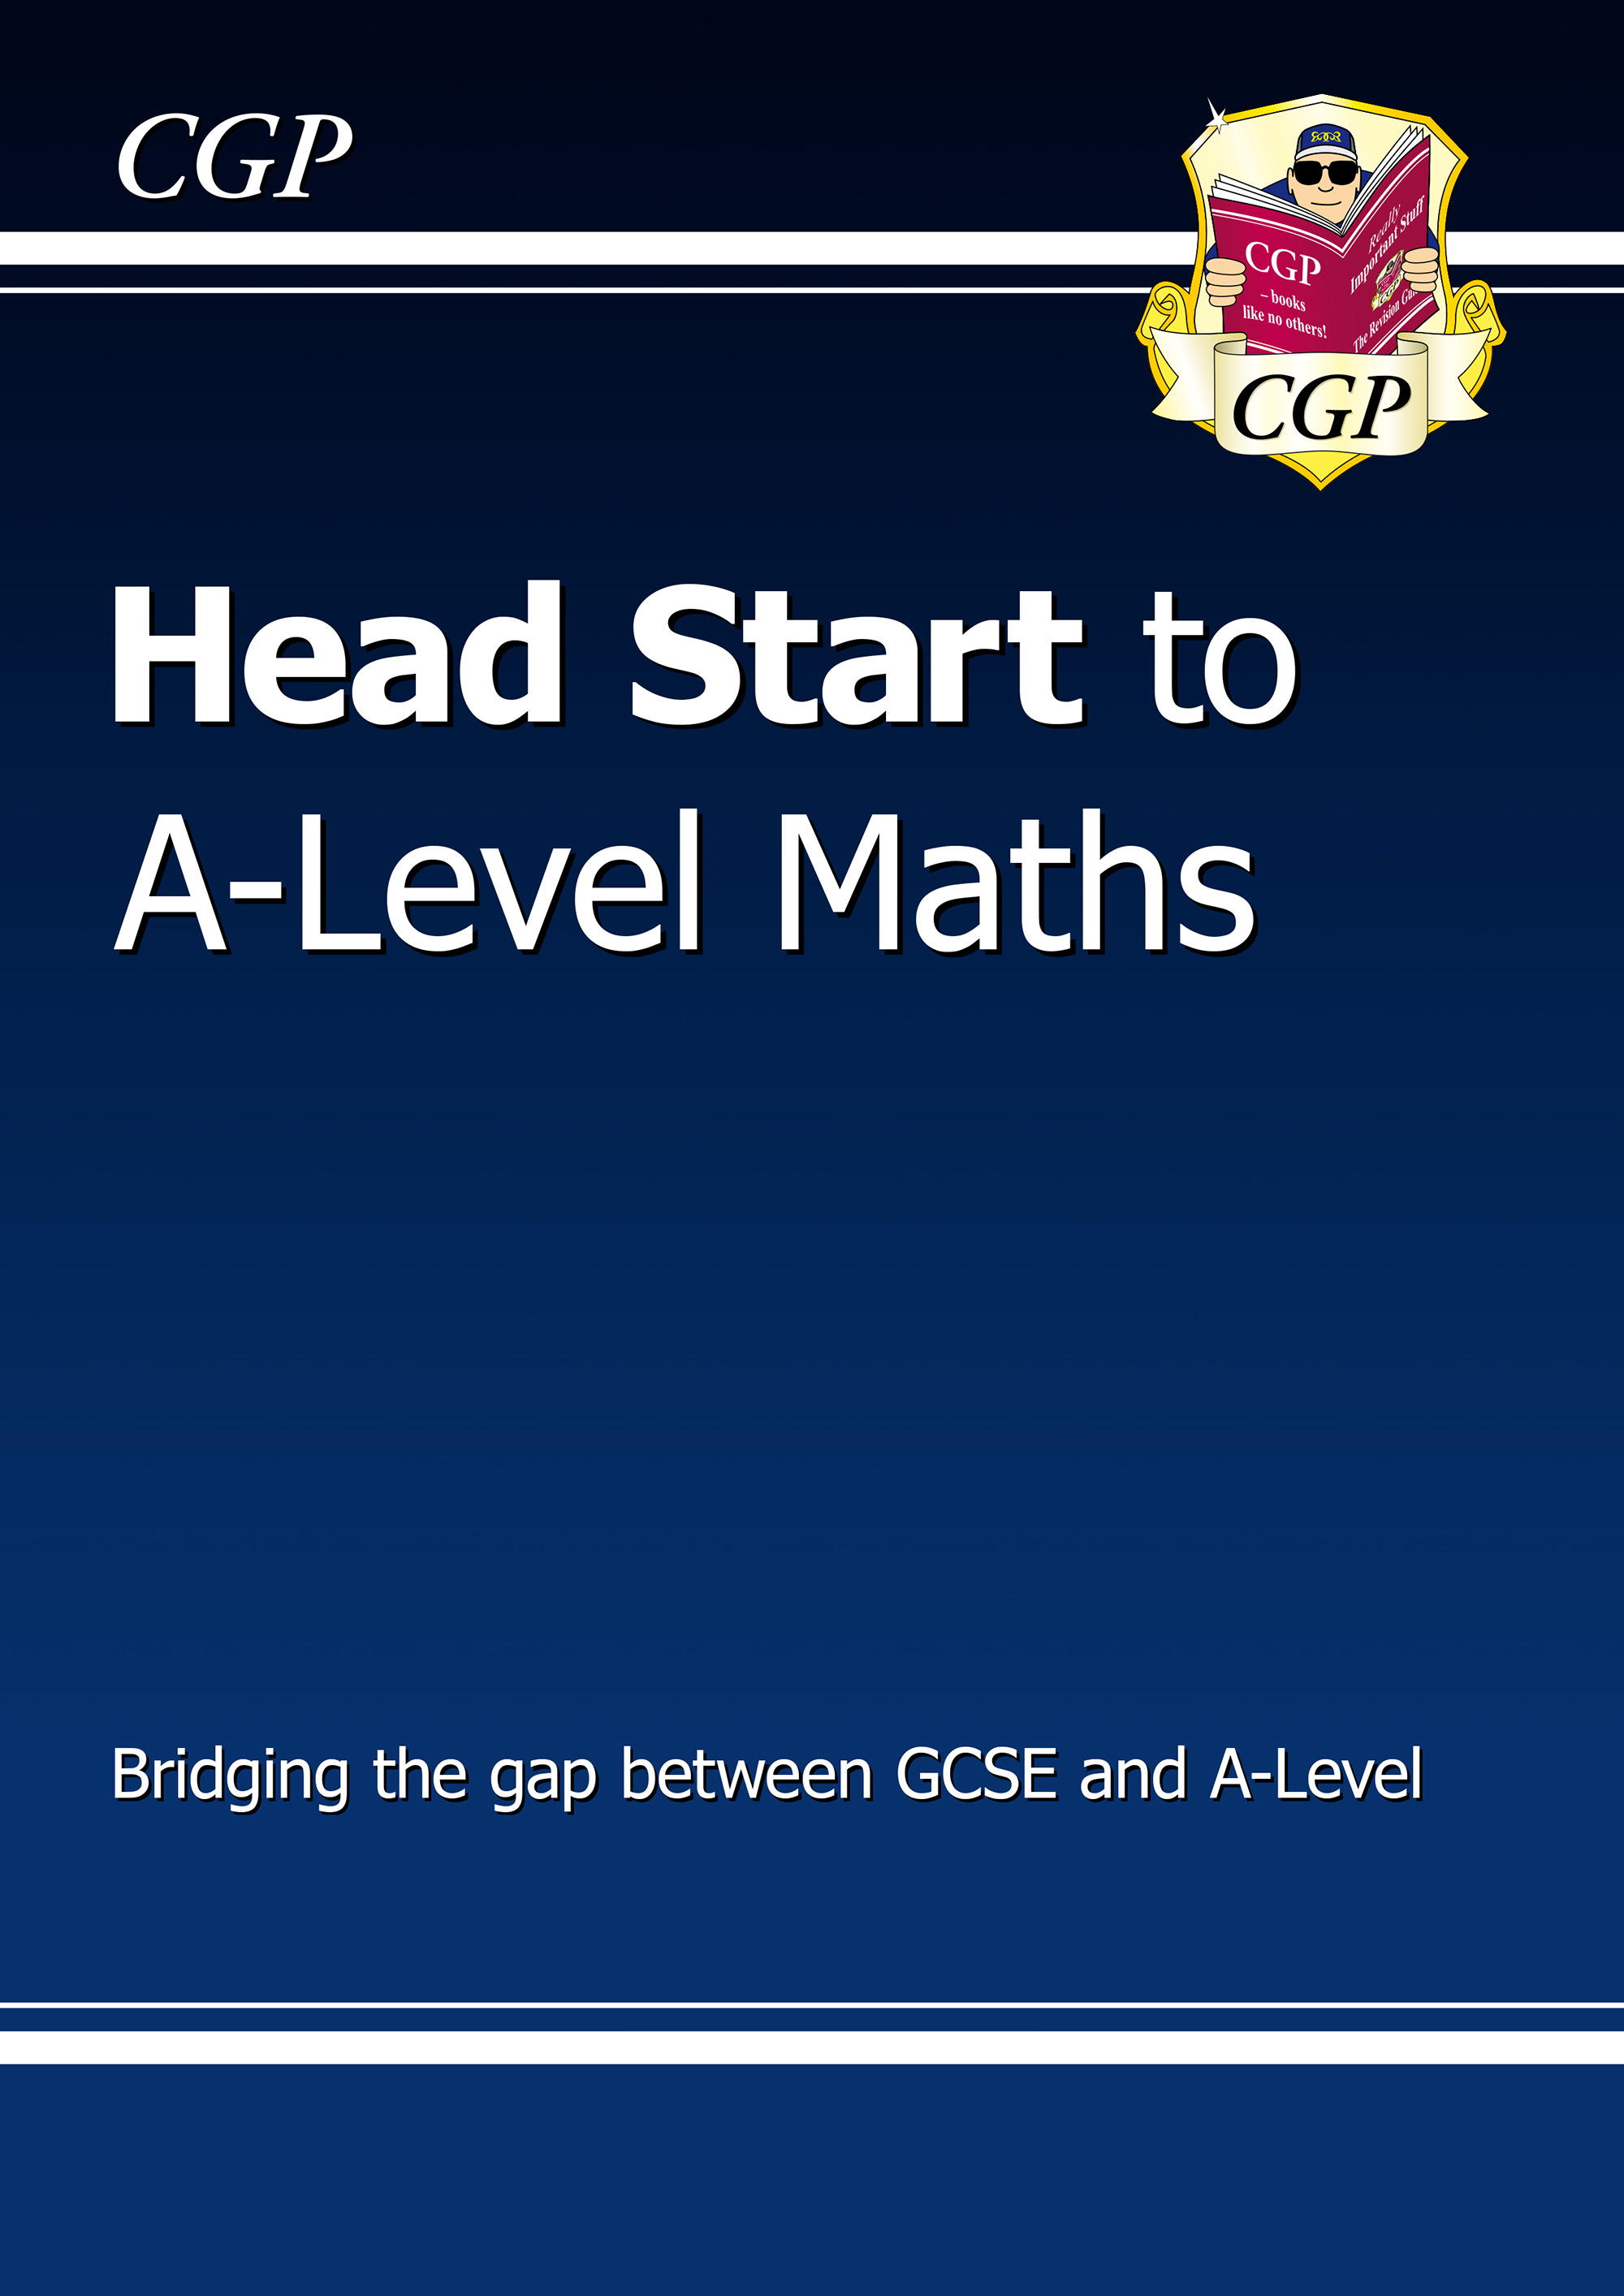 MBR71DK - New Head Start to A-Level Maths